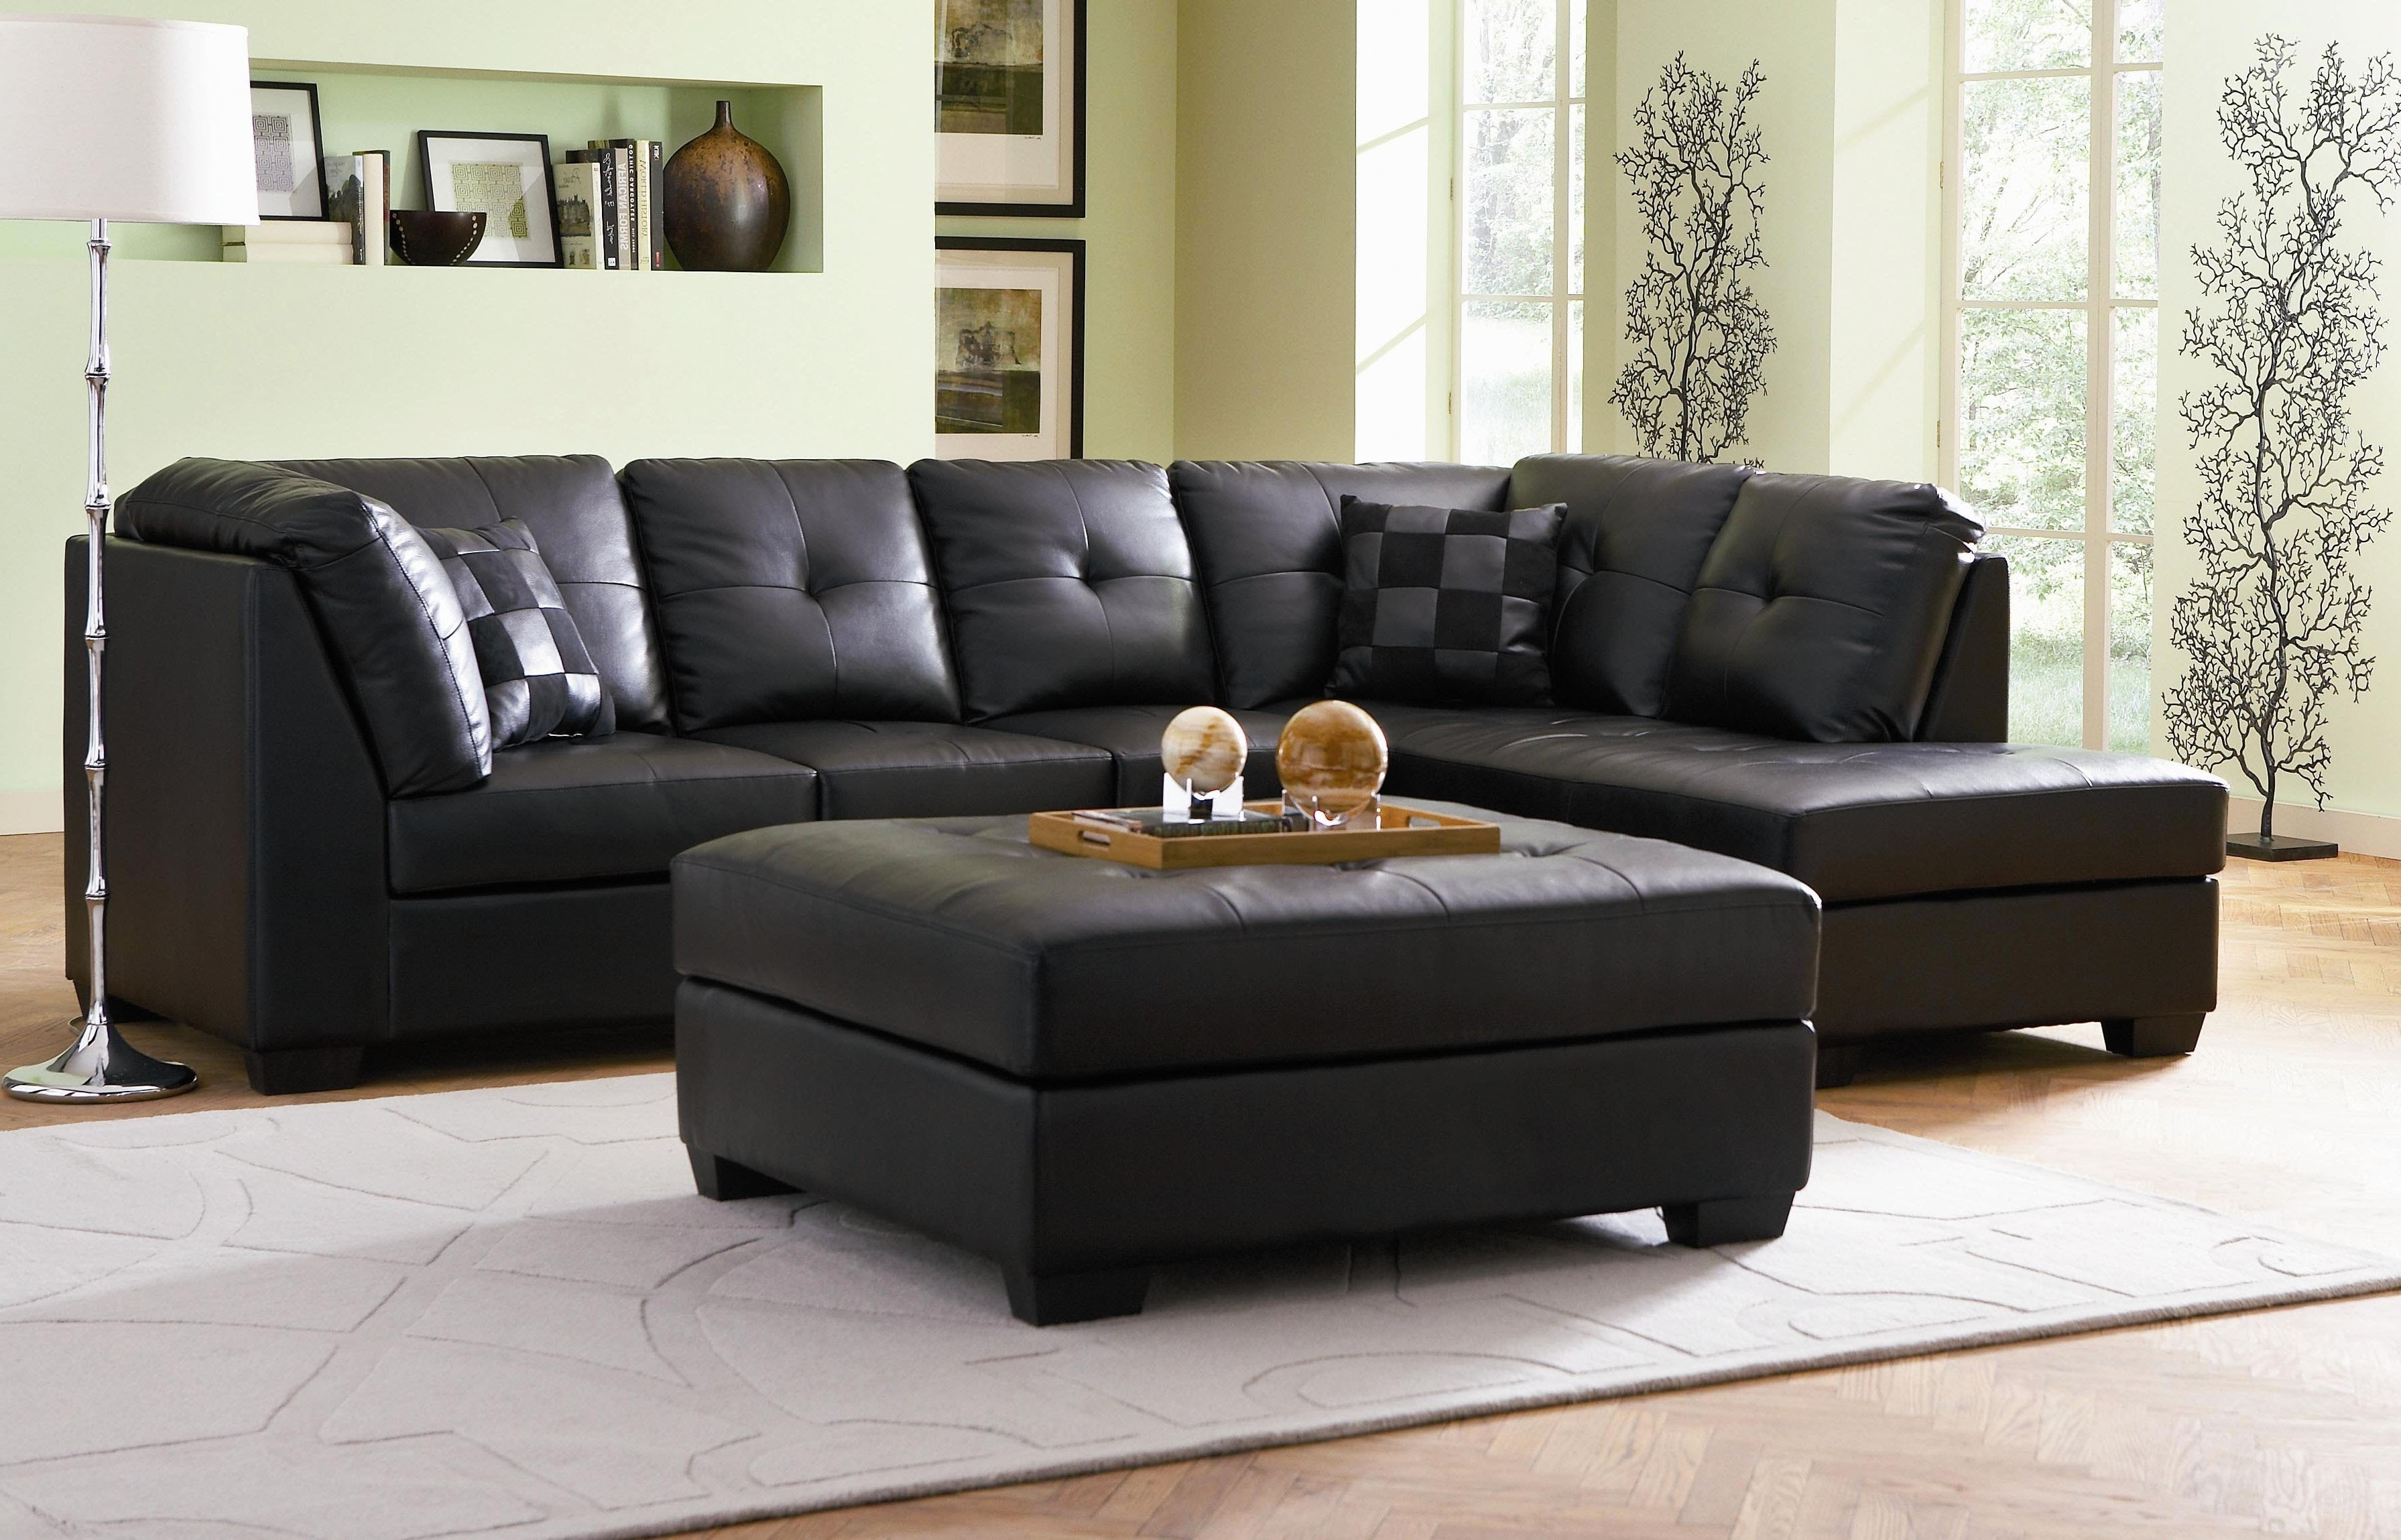 Fashionable Jacksonville Fl Sectional Sofas With Photos Sectional Sofas Jacksonville Fl – Buildsimplehome (View 6 of 20)